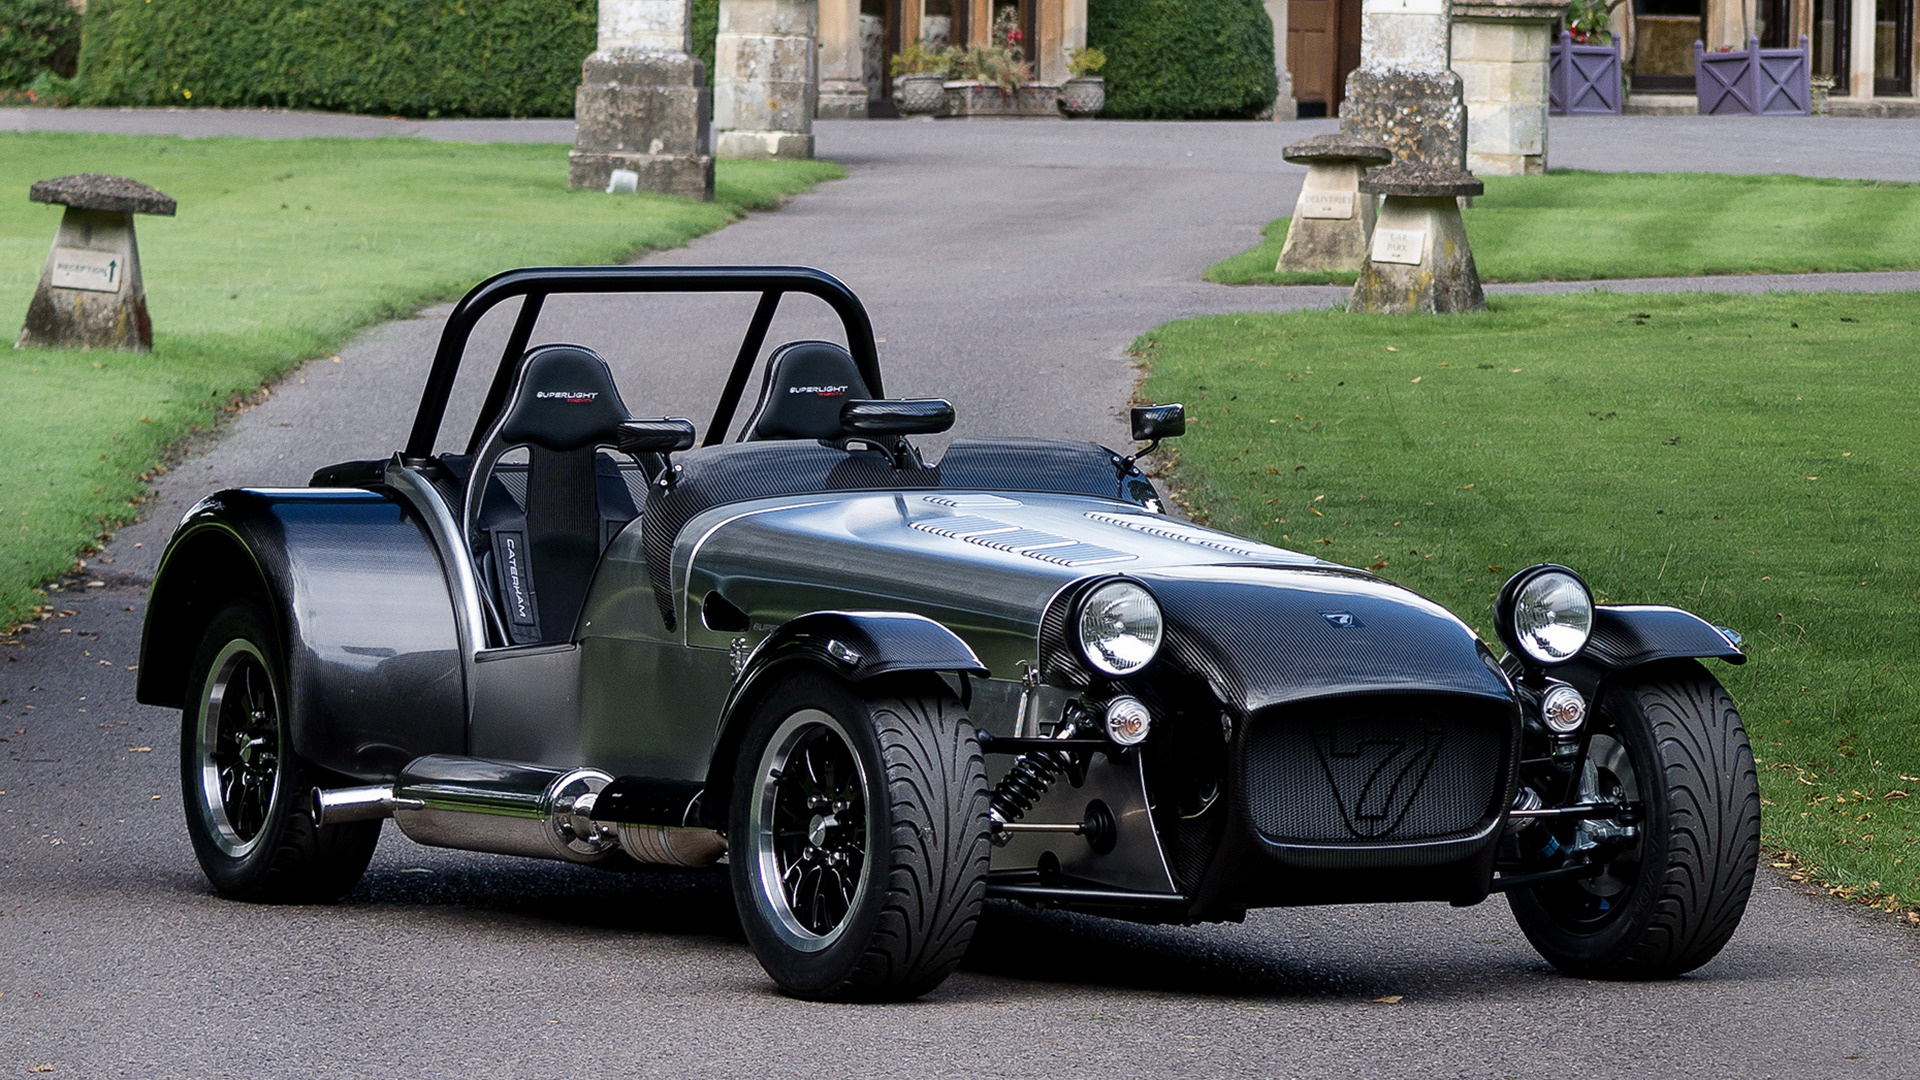 Caterham Seven Superlight Twenty (2015) Wallpapers and HD Images - Car ...